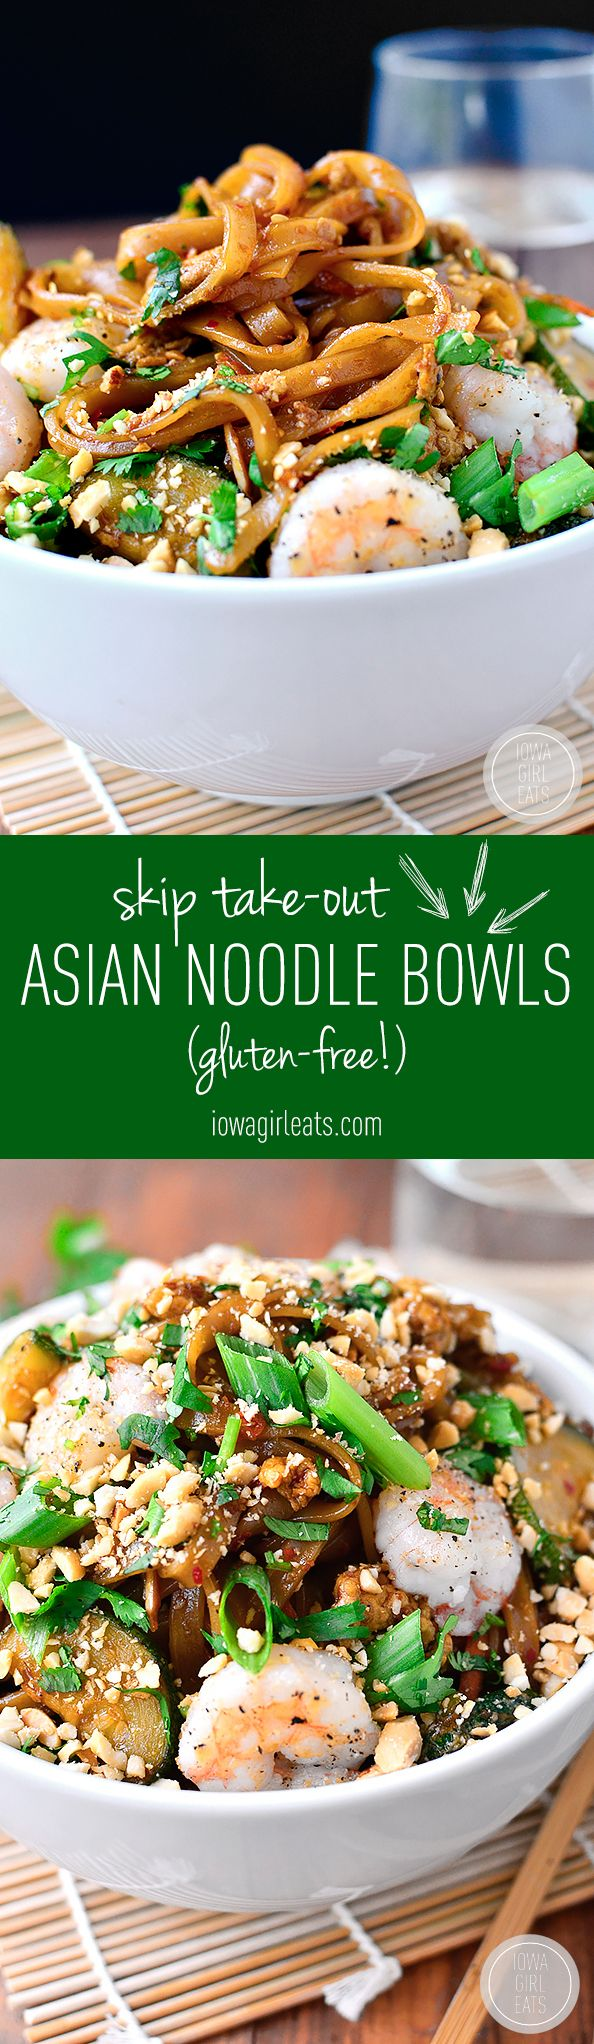 Asian Noodle Bowls are gluten-free, quick, tasty and will satisfy your craving for takeout in 30 minutes or less!   iowagirleats.com